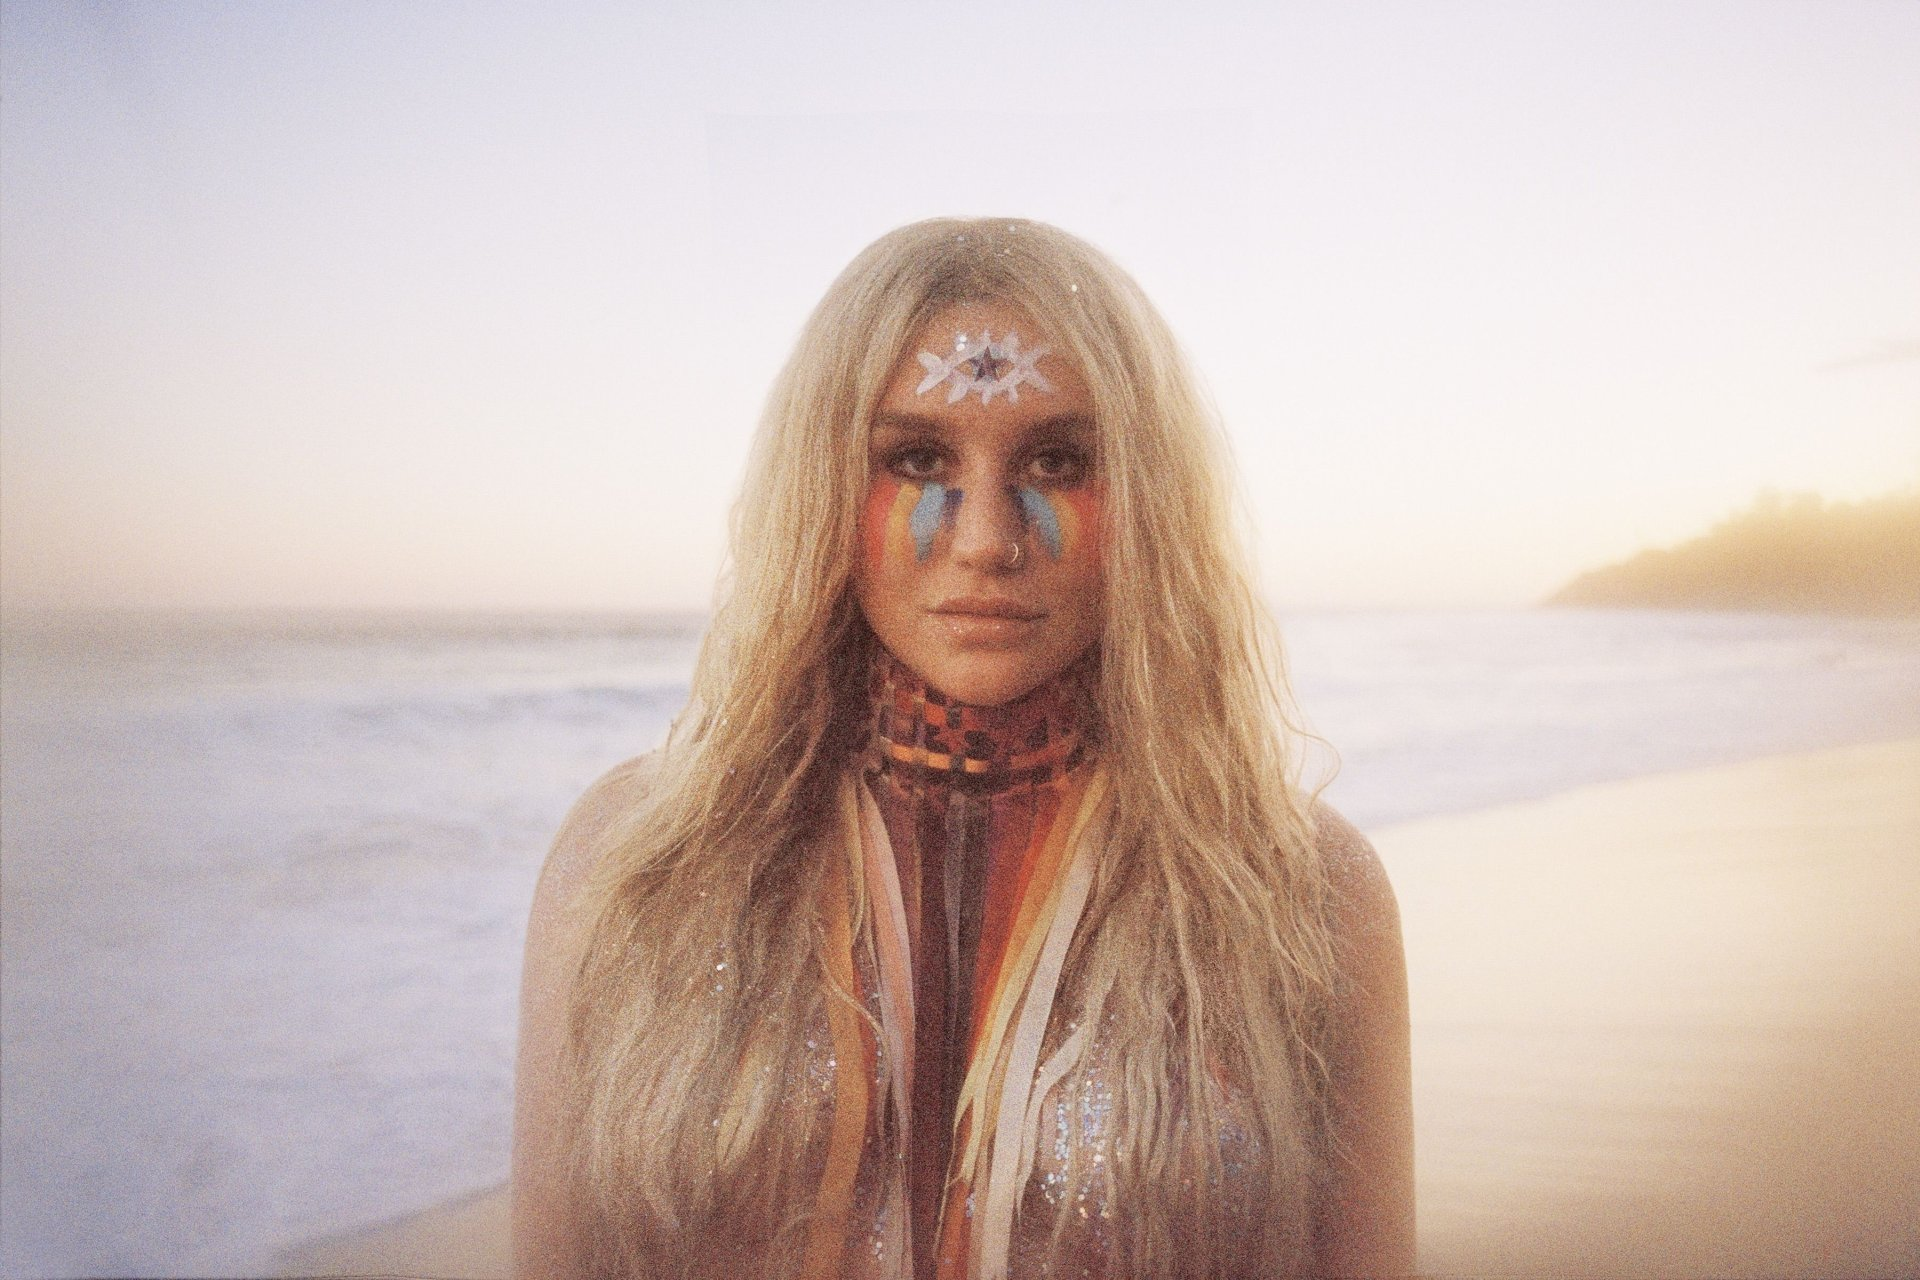 Kesha Nude Leaked Photos Collection - 7 Photos naked (28 pics)